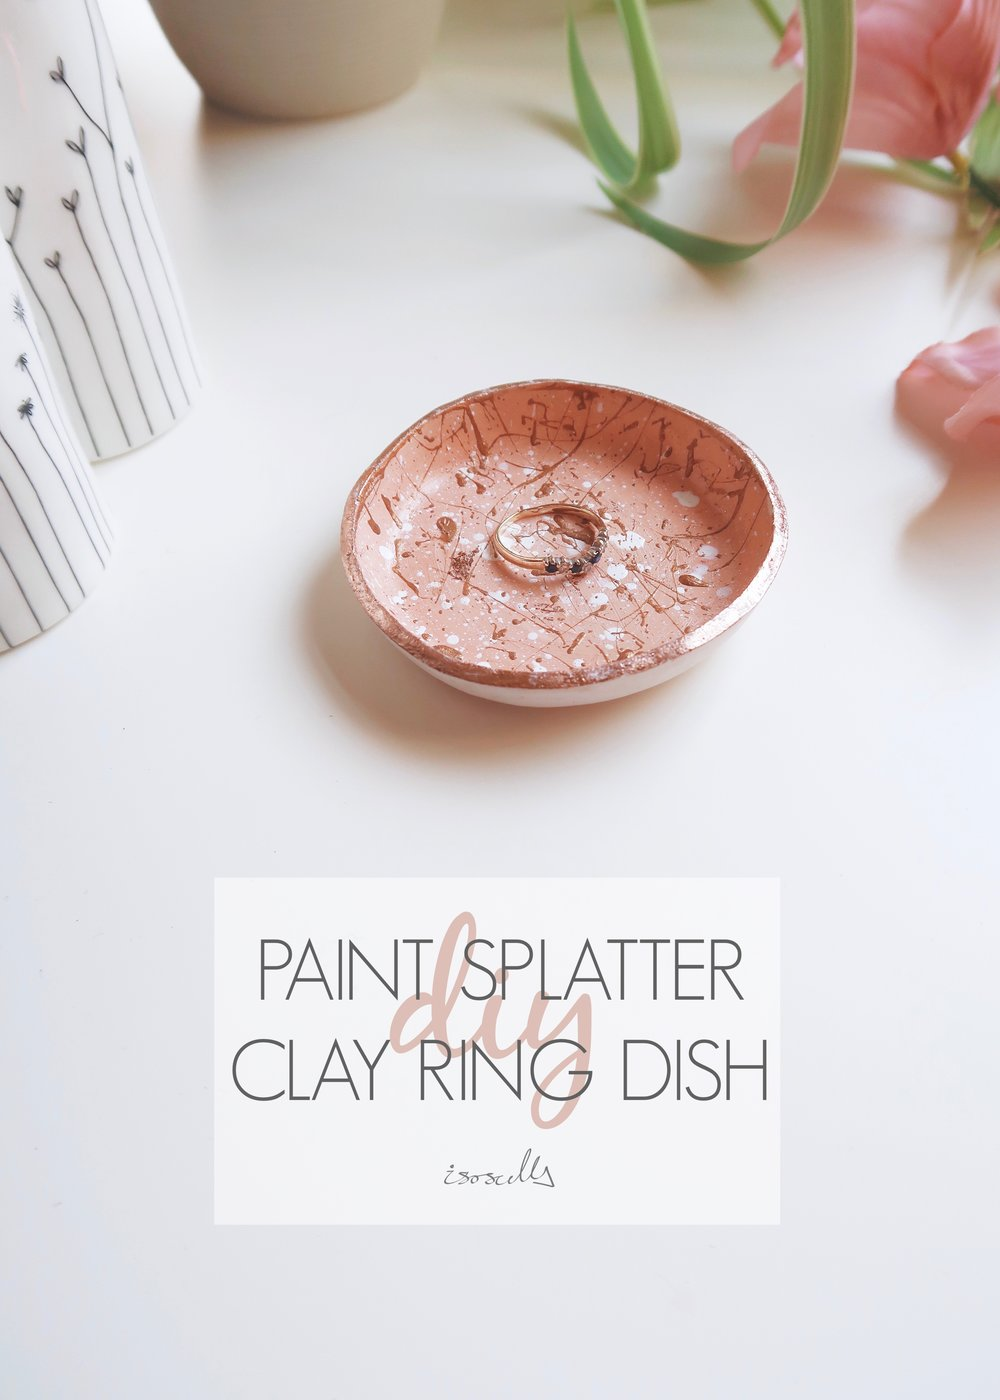 DIY Paint Splatter Clay Ring Dish - Isoscella